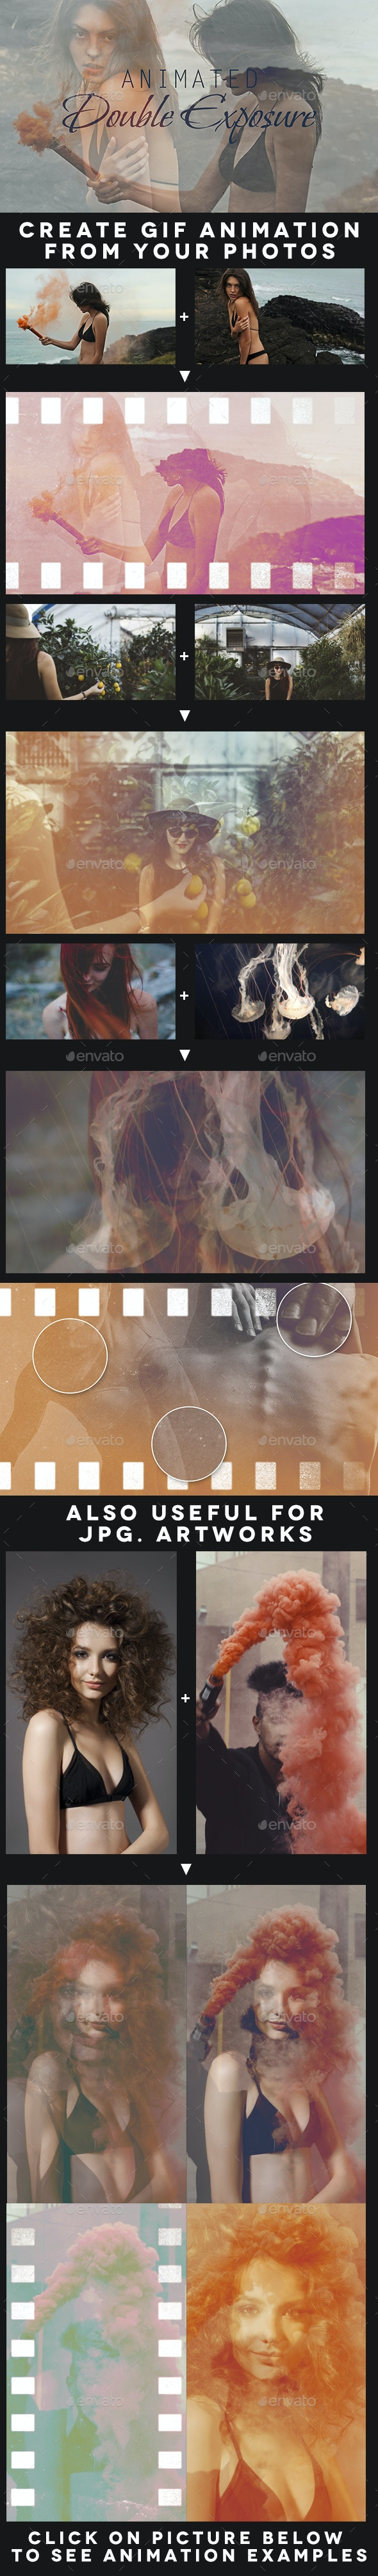 Animated Double Exposure Kit - Artistic Photo Templates